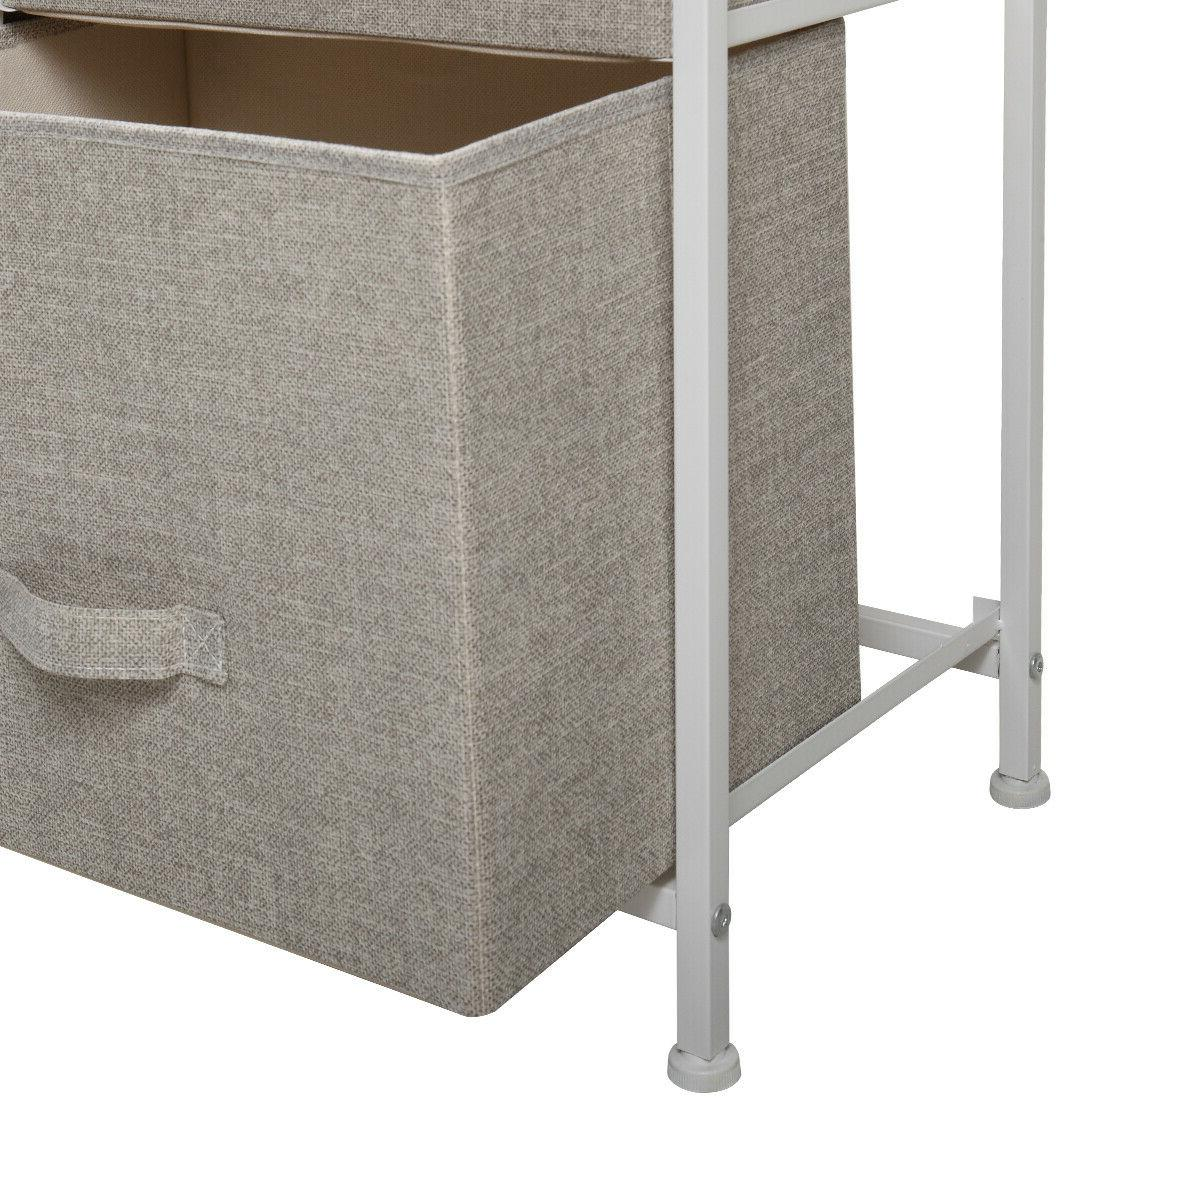 3-Tier Drawers Storage Cabinet Tower Fabric Bedroom